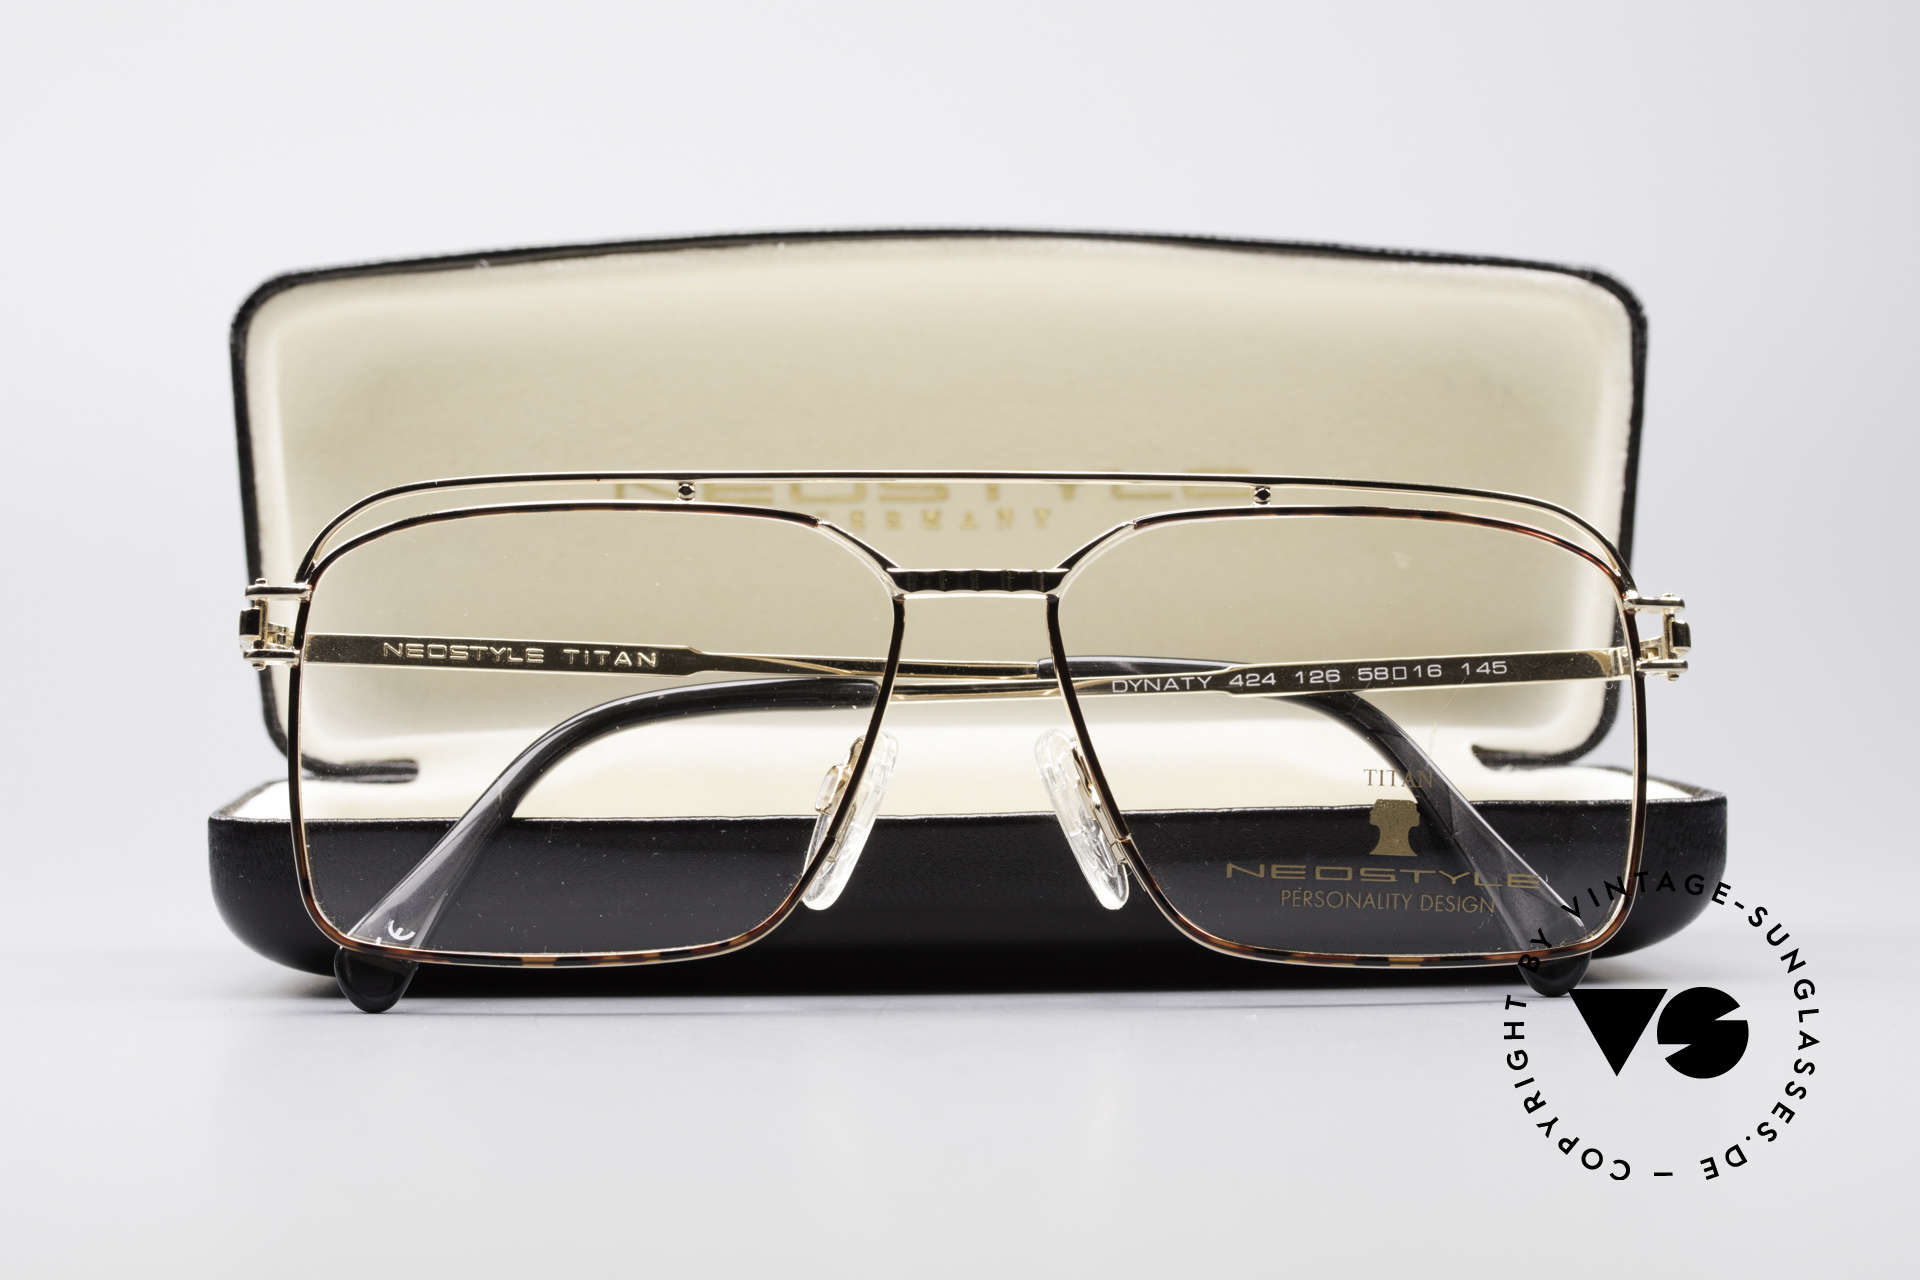 Neostyle Dynasty 424 - L 80's Titanium Men's Frame, NO RETRO glasses, just a stylish old ORIGINAL, Made for Men